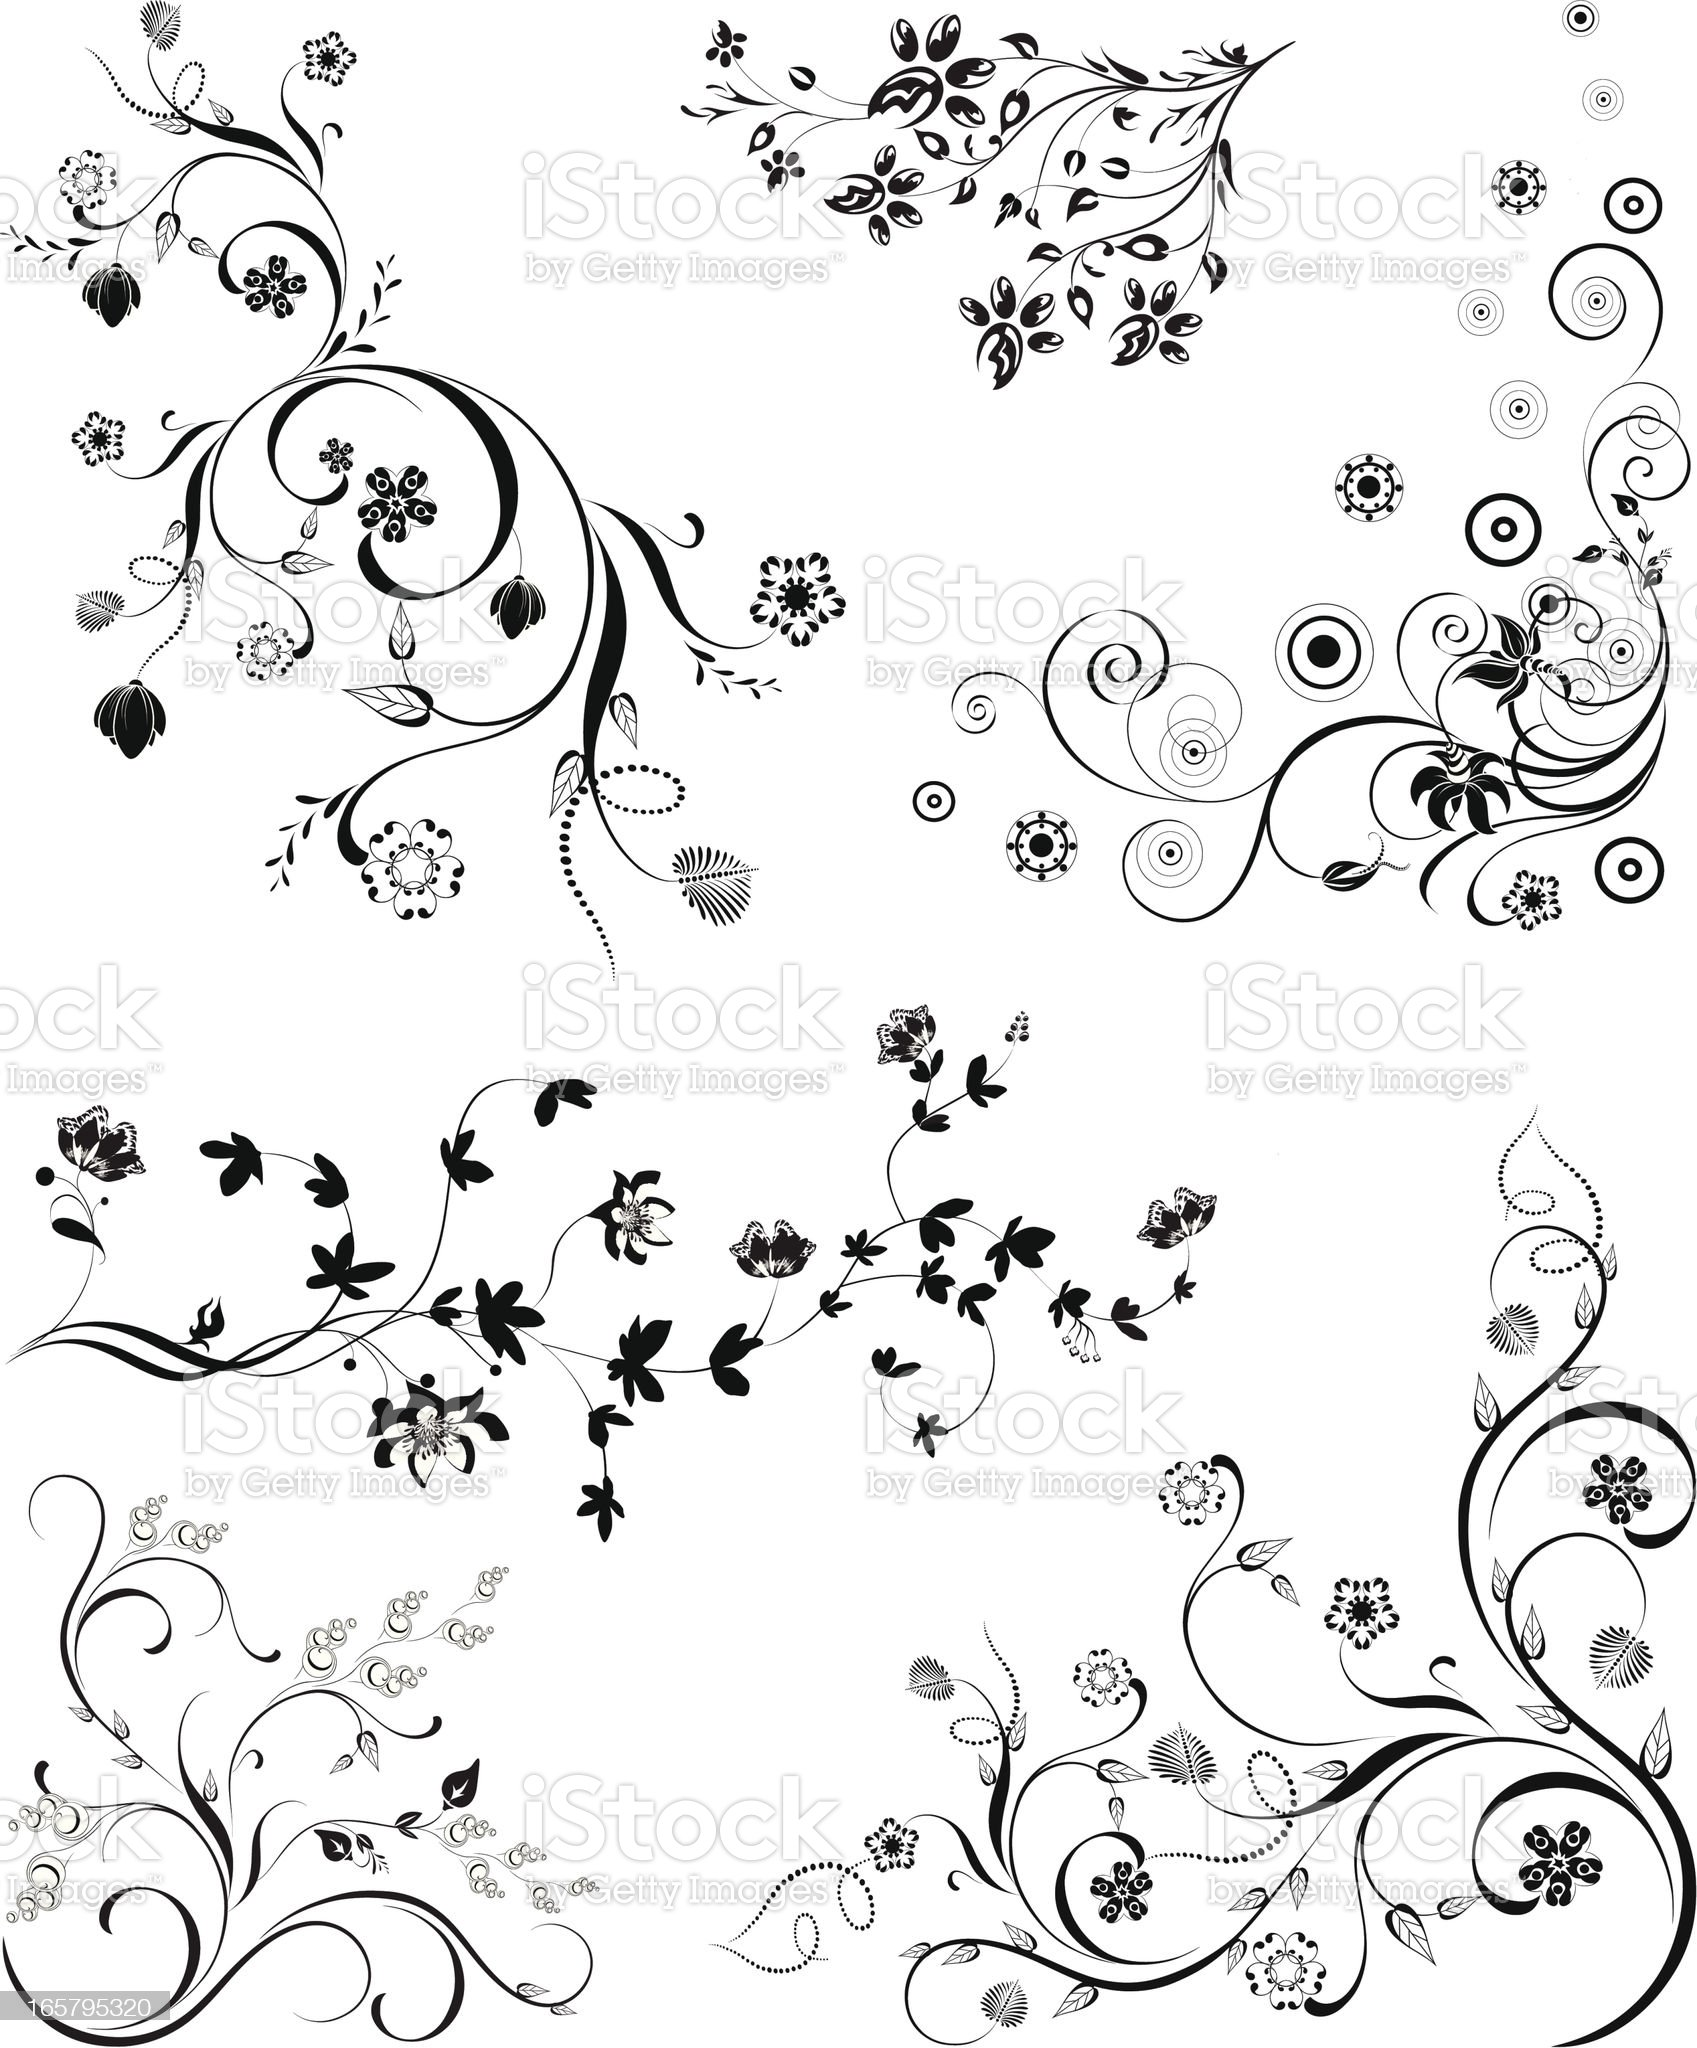 Set of Floral Design Elements royalty-free stock vector art